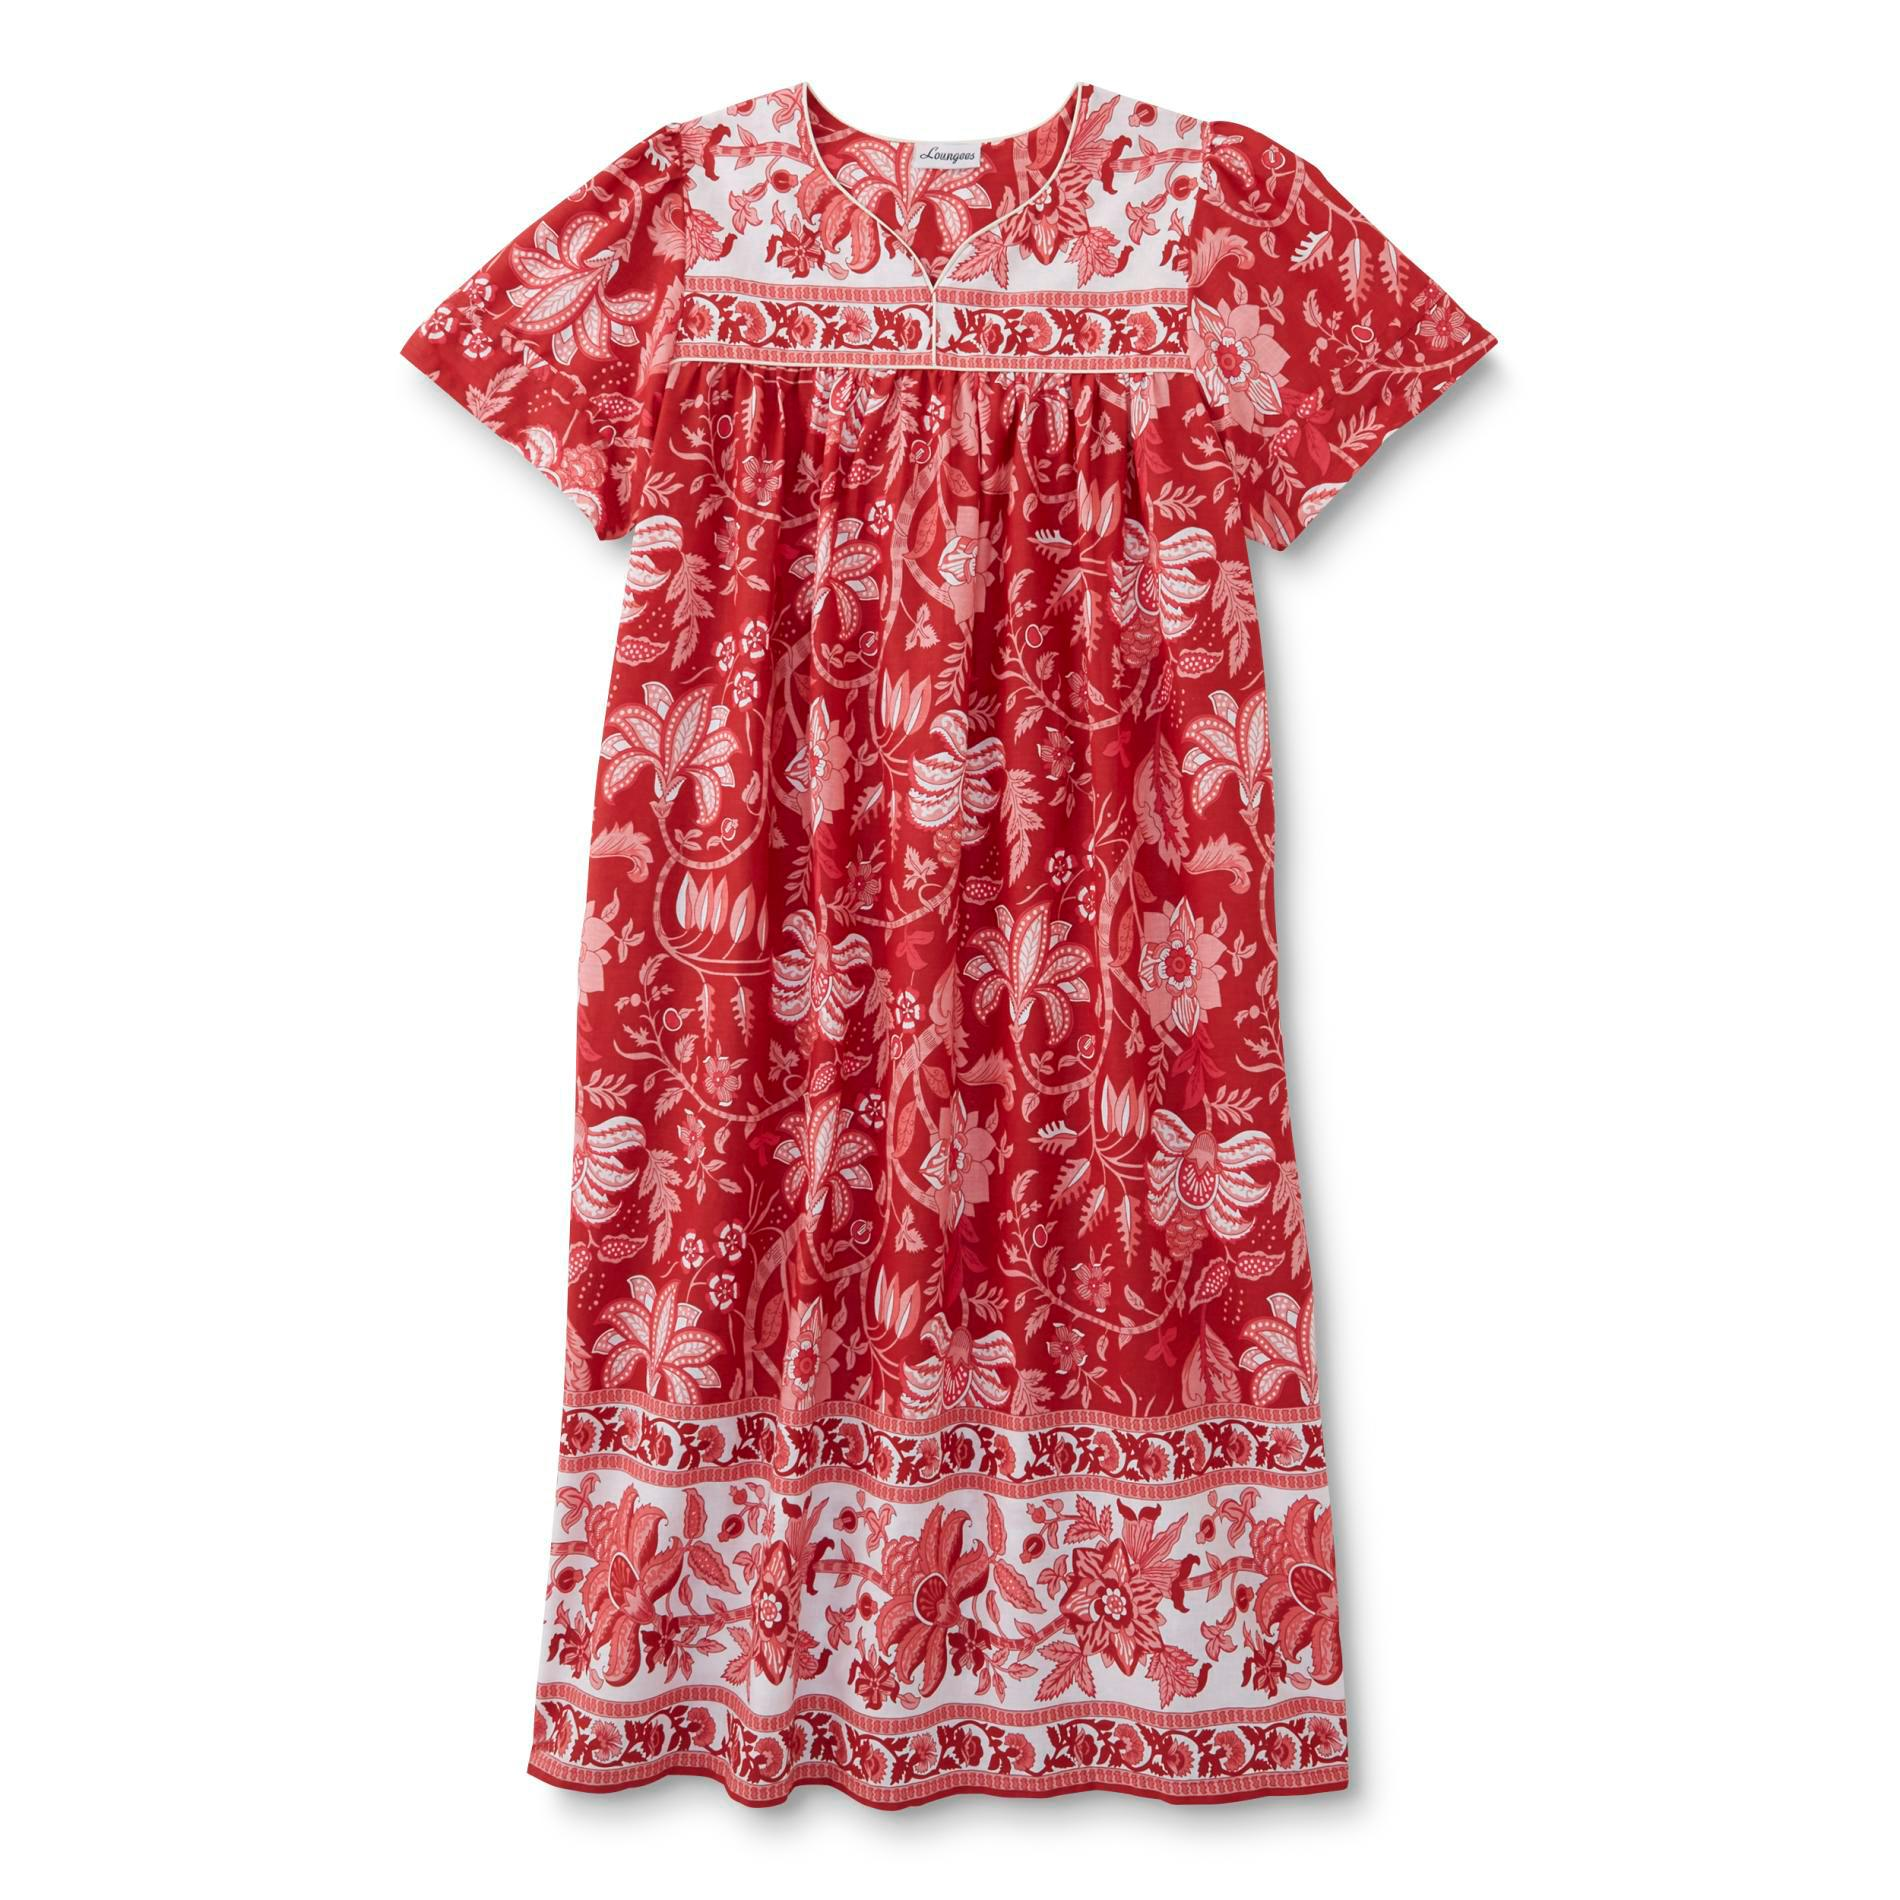 Loungees Women's Plus Nightgown - Floral